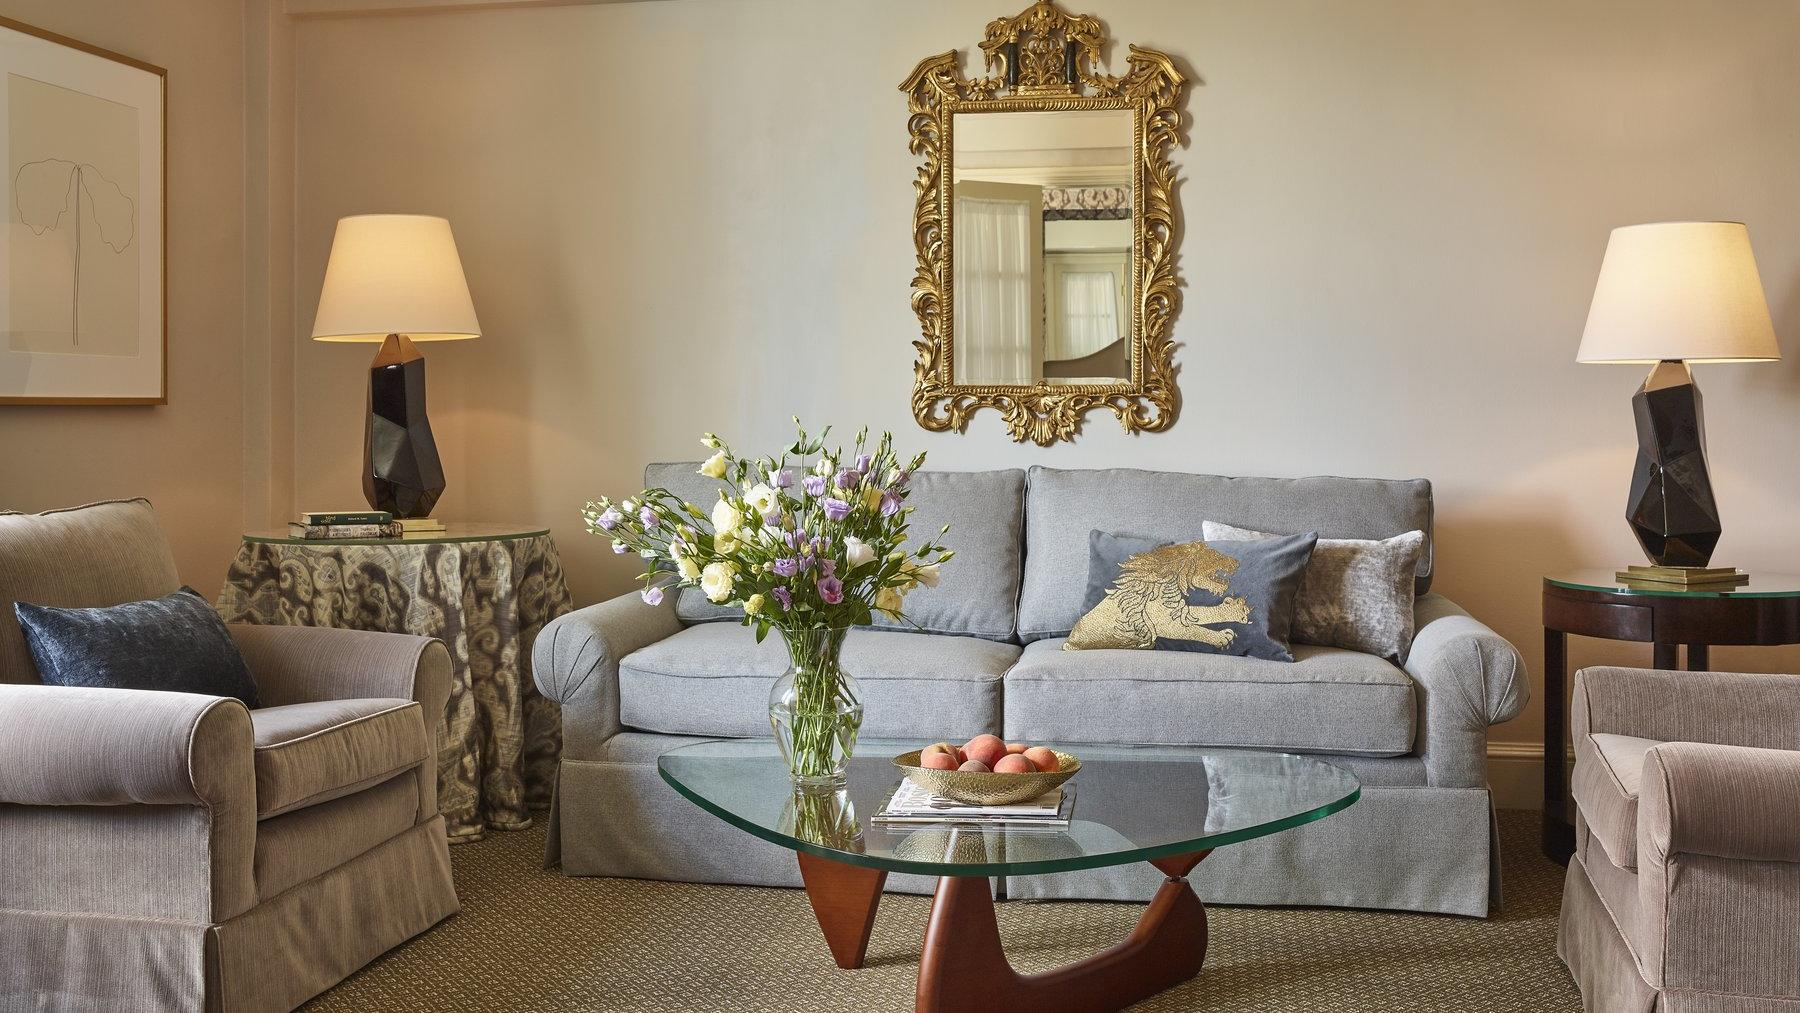 Beige colored living room with grey sofa and taupe accent chairs